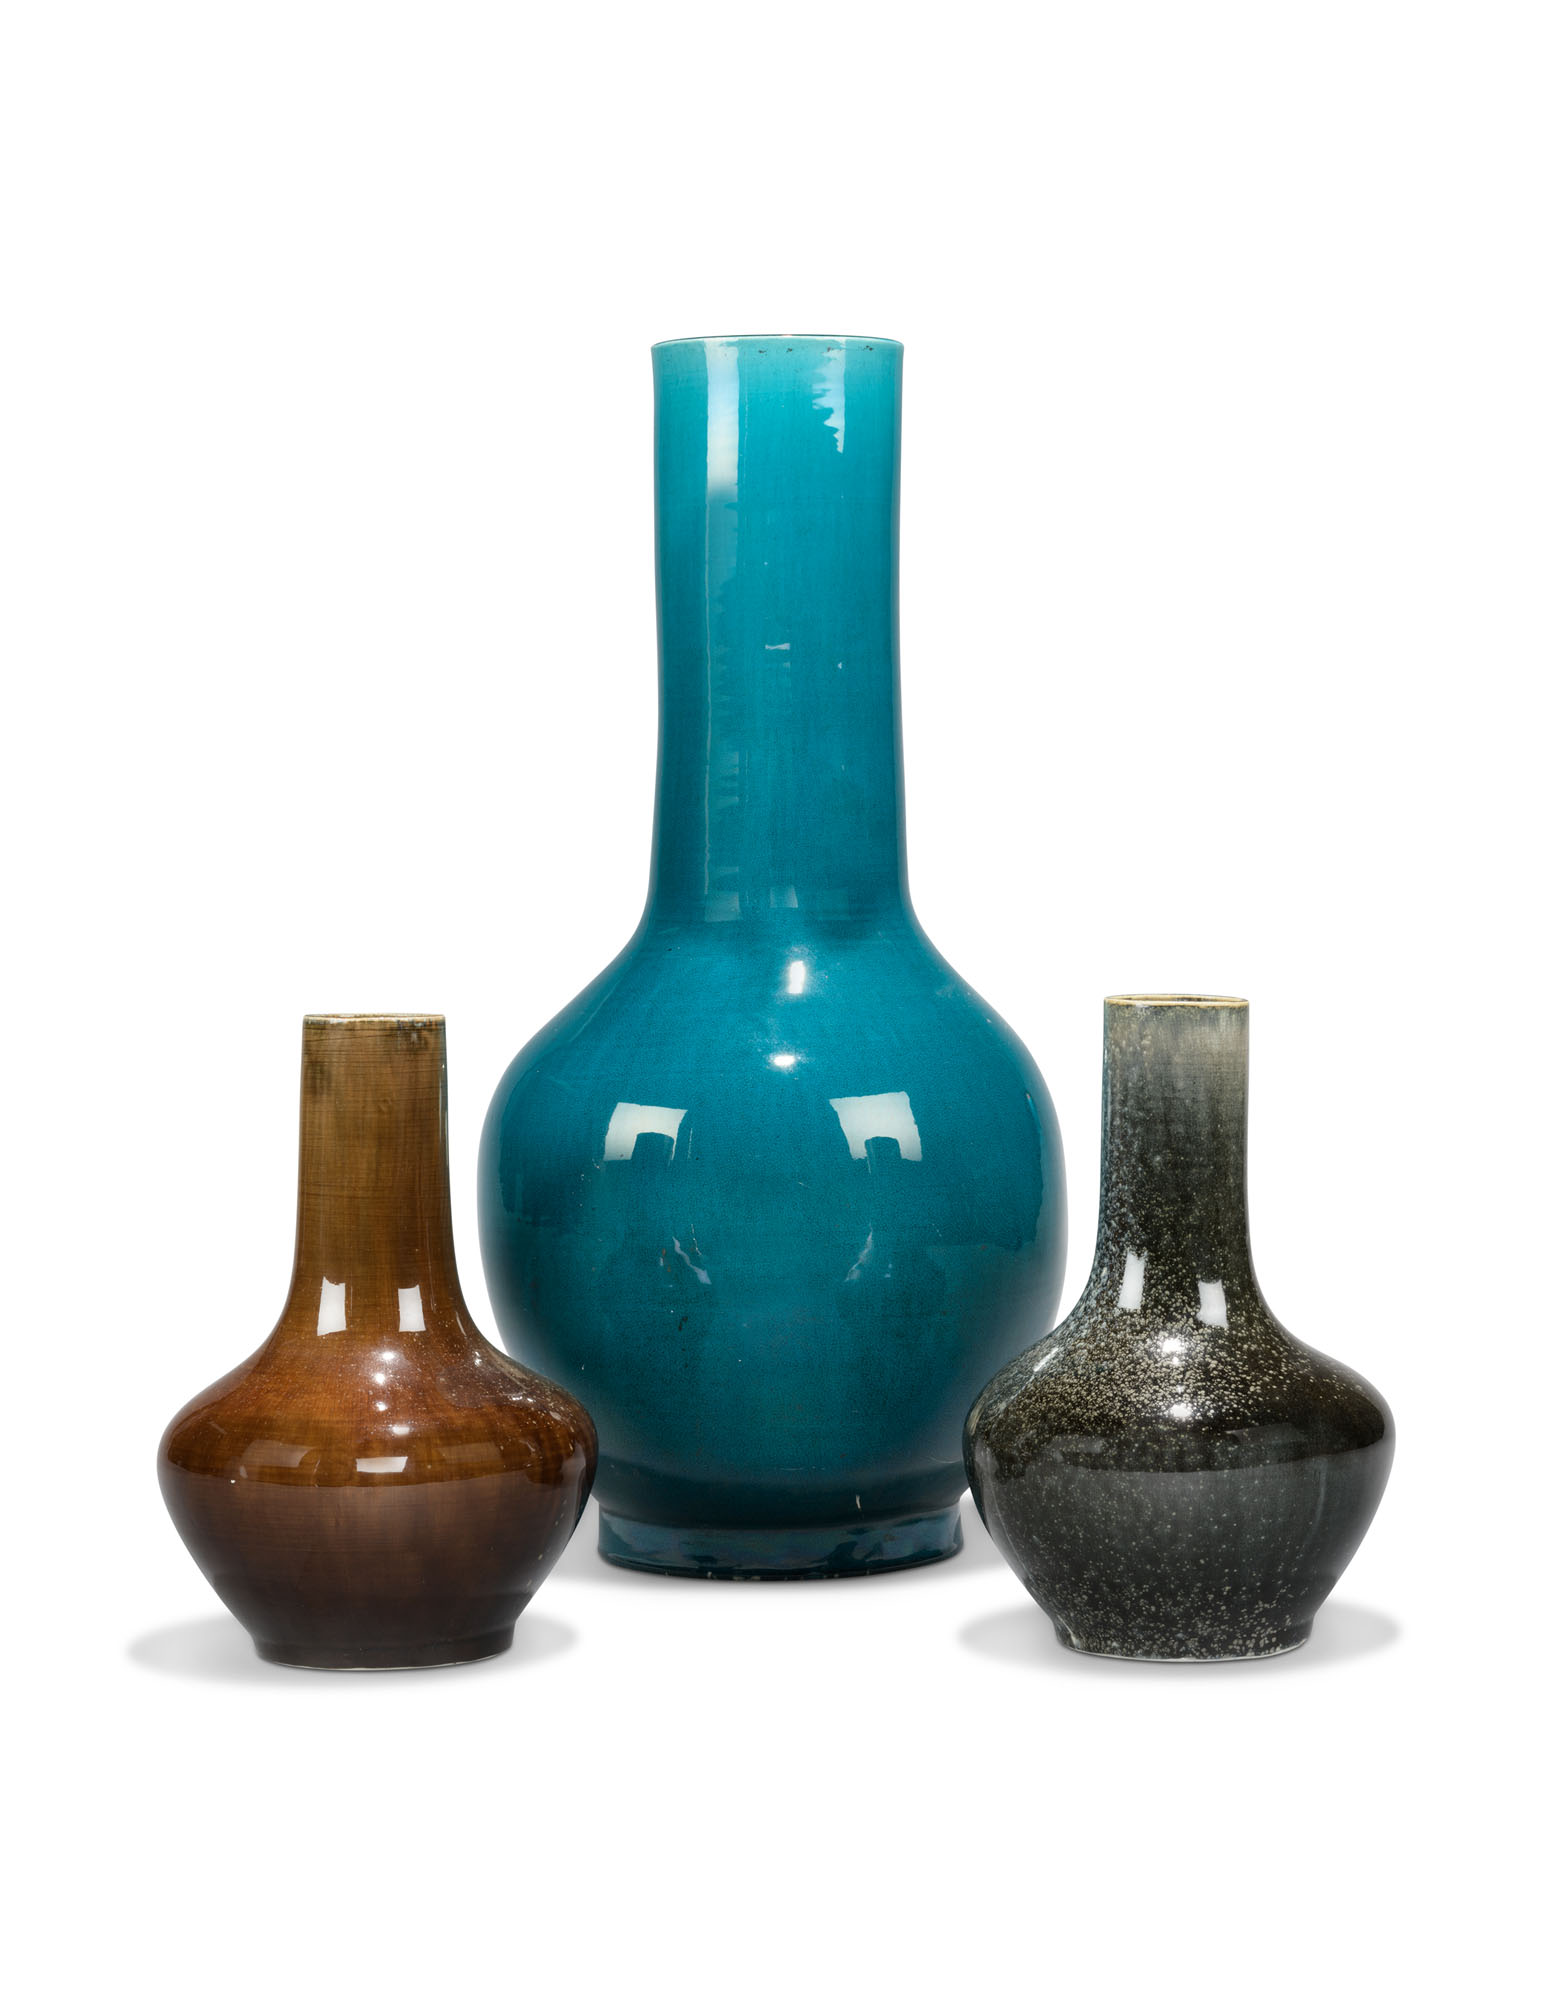 A LARGE CHINESE TURQUOISE-GLAZED BOTTLE VASE AND TWO FURTHER VASES